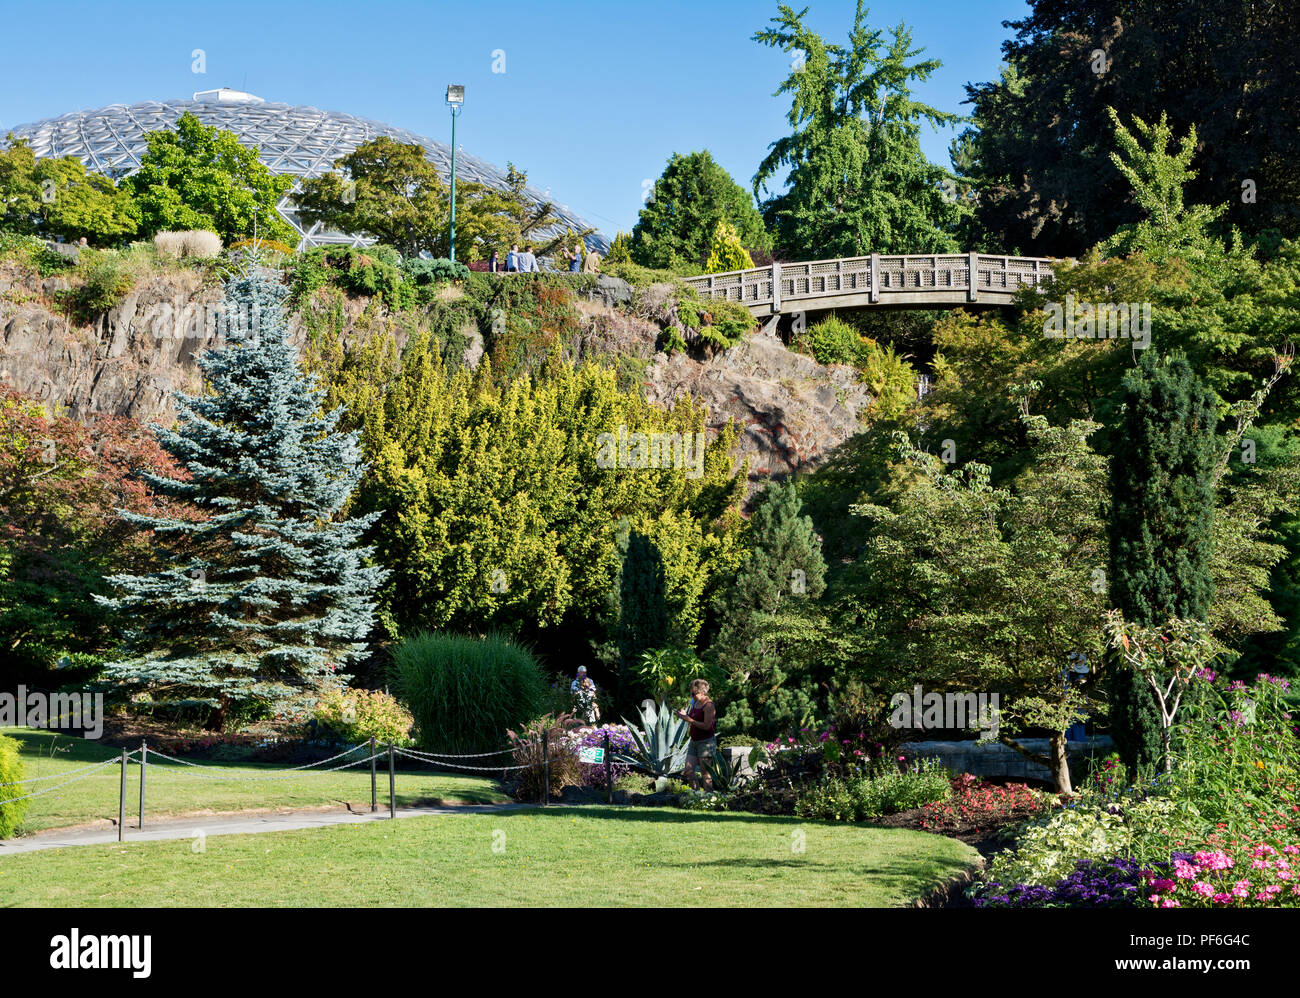 Queen Elizabeth Park in Vancouver, BC Canada.  Beautiful sunken gardens with Bloedel Conservatory above. Stock Photo